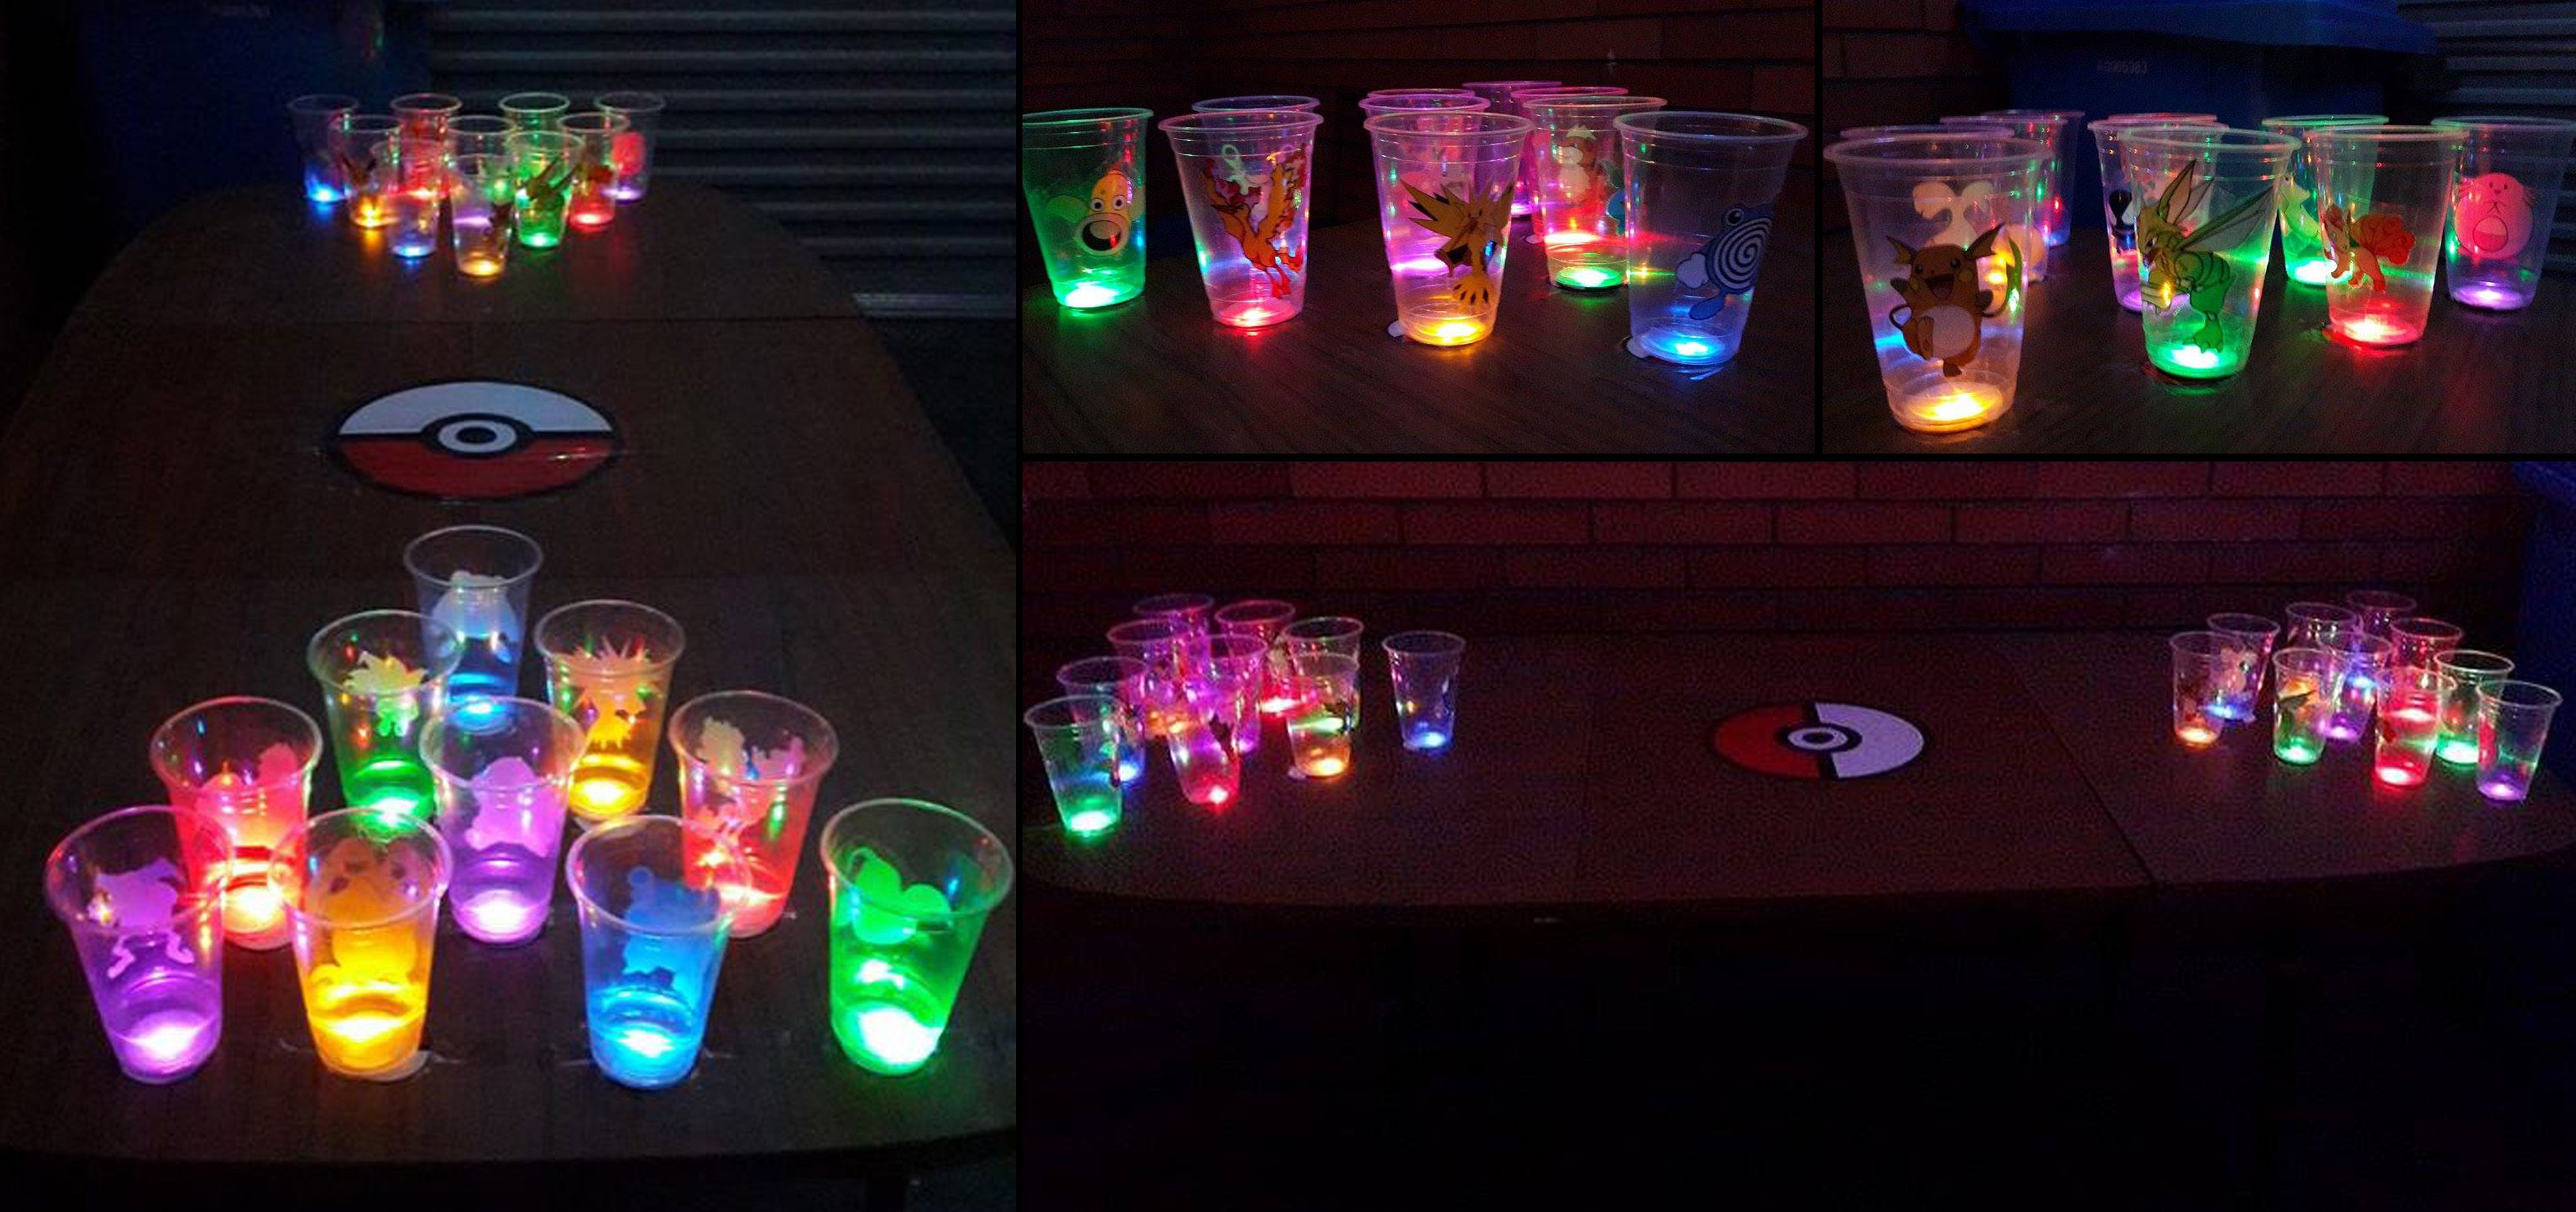 Pokemon Glow Beer Pong! Using LED bottle stickers http ... on glow sticks in water, glow sticks cool, glow stick party decoration ideas, glow stick outdoor ideas, led lighting ideas, glow sticks in balloons, glow stick costume ideas, fun with glow sticks ideas, glow stick craft ideas, glow stick game ideas, glow sticks in the dark, 10 awesome glow stick ideas, glow stick decorating ideas, glow stick centerpiece ideas, glow in the dark ideas,